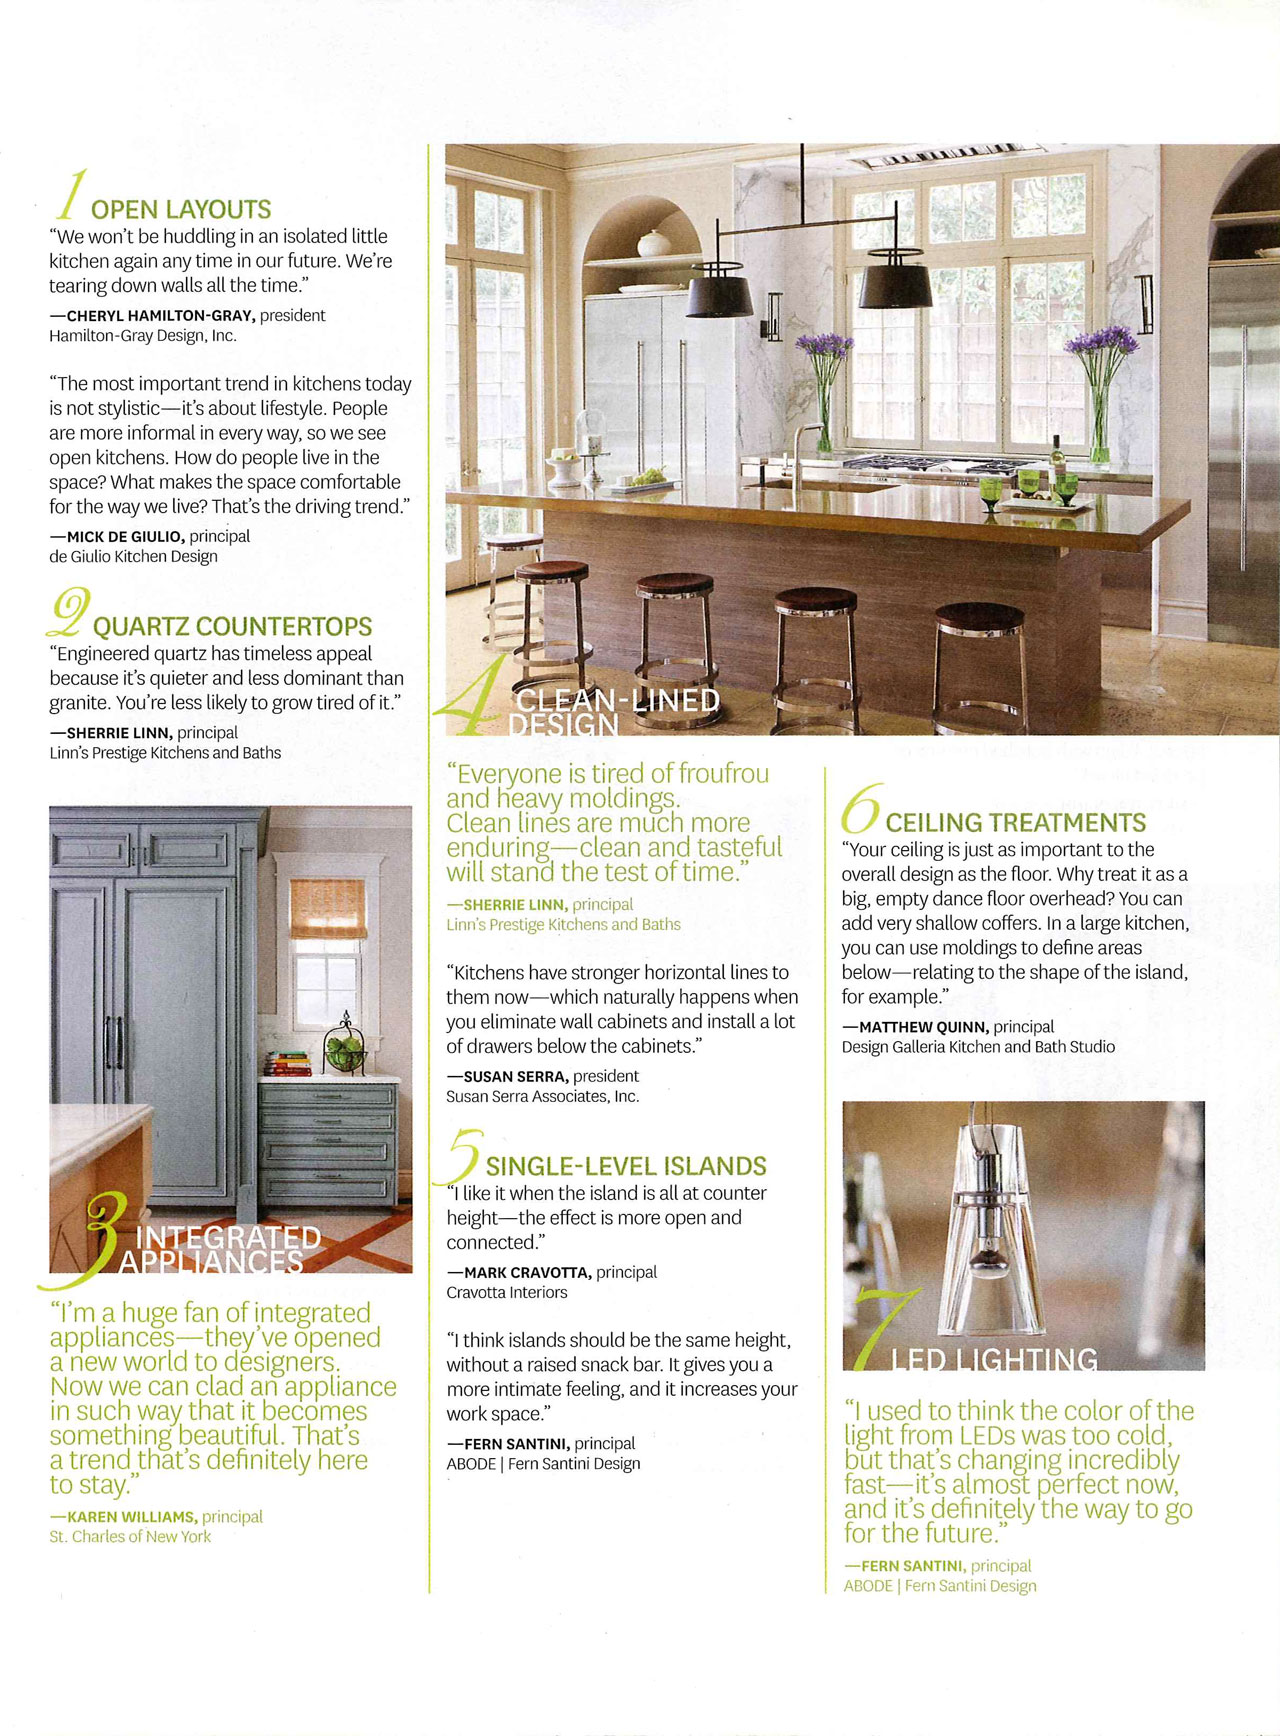 Beautiful Kitchens and Baths - Spring 2014 — FERN SANTINI